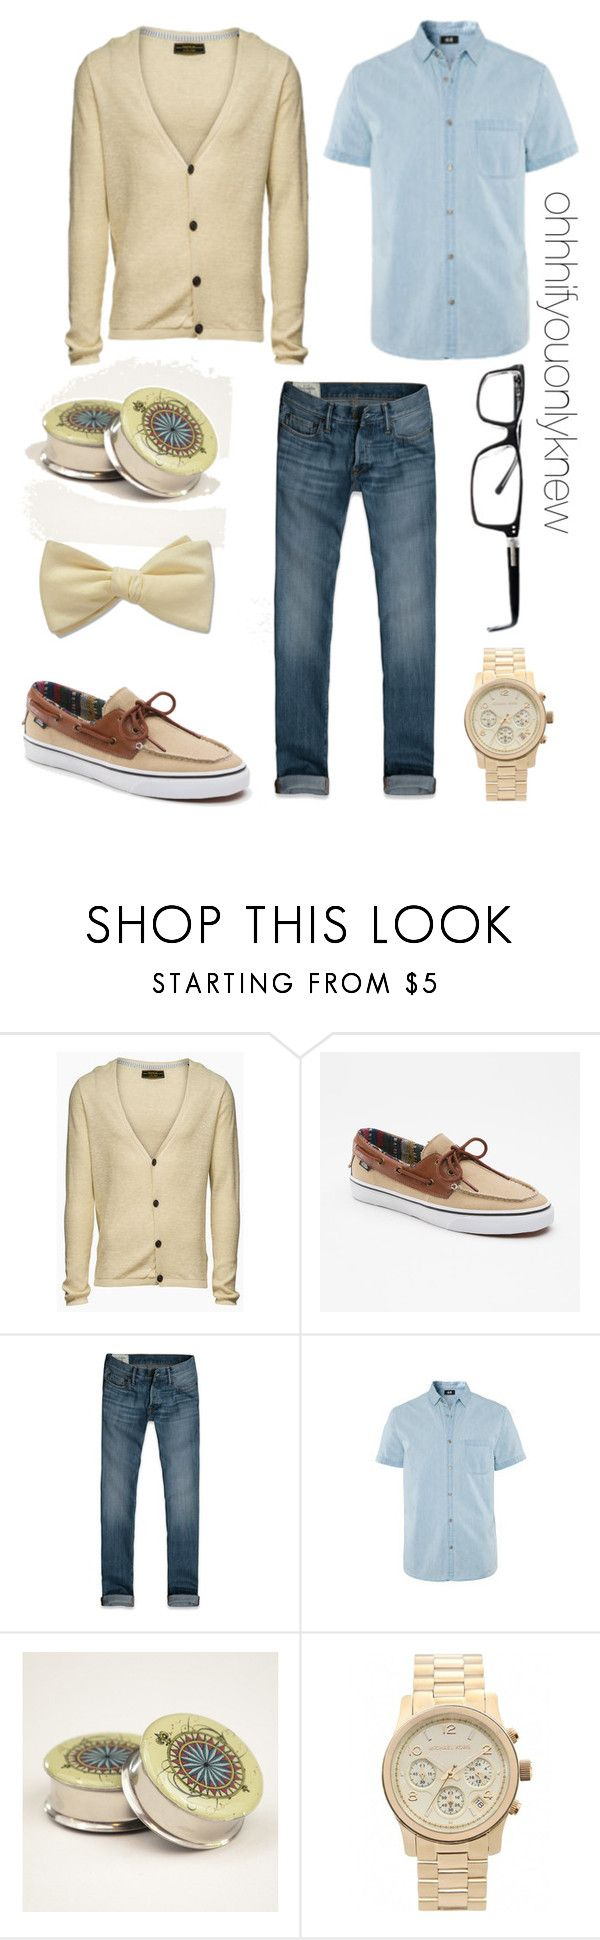 """Untitled #179"" by ohhhifyouonlyknew ❤ liked on Polyvore featuring Jack & Jones, Abercrombie & Fitch and Michael Kors"